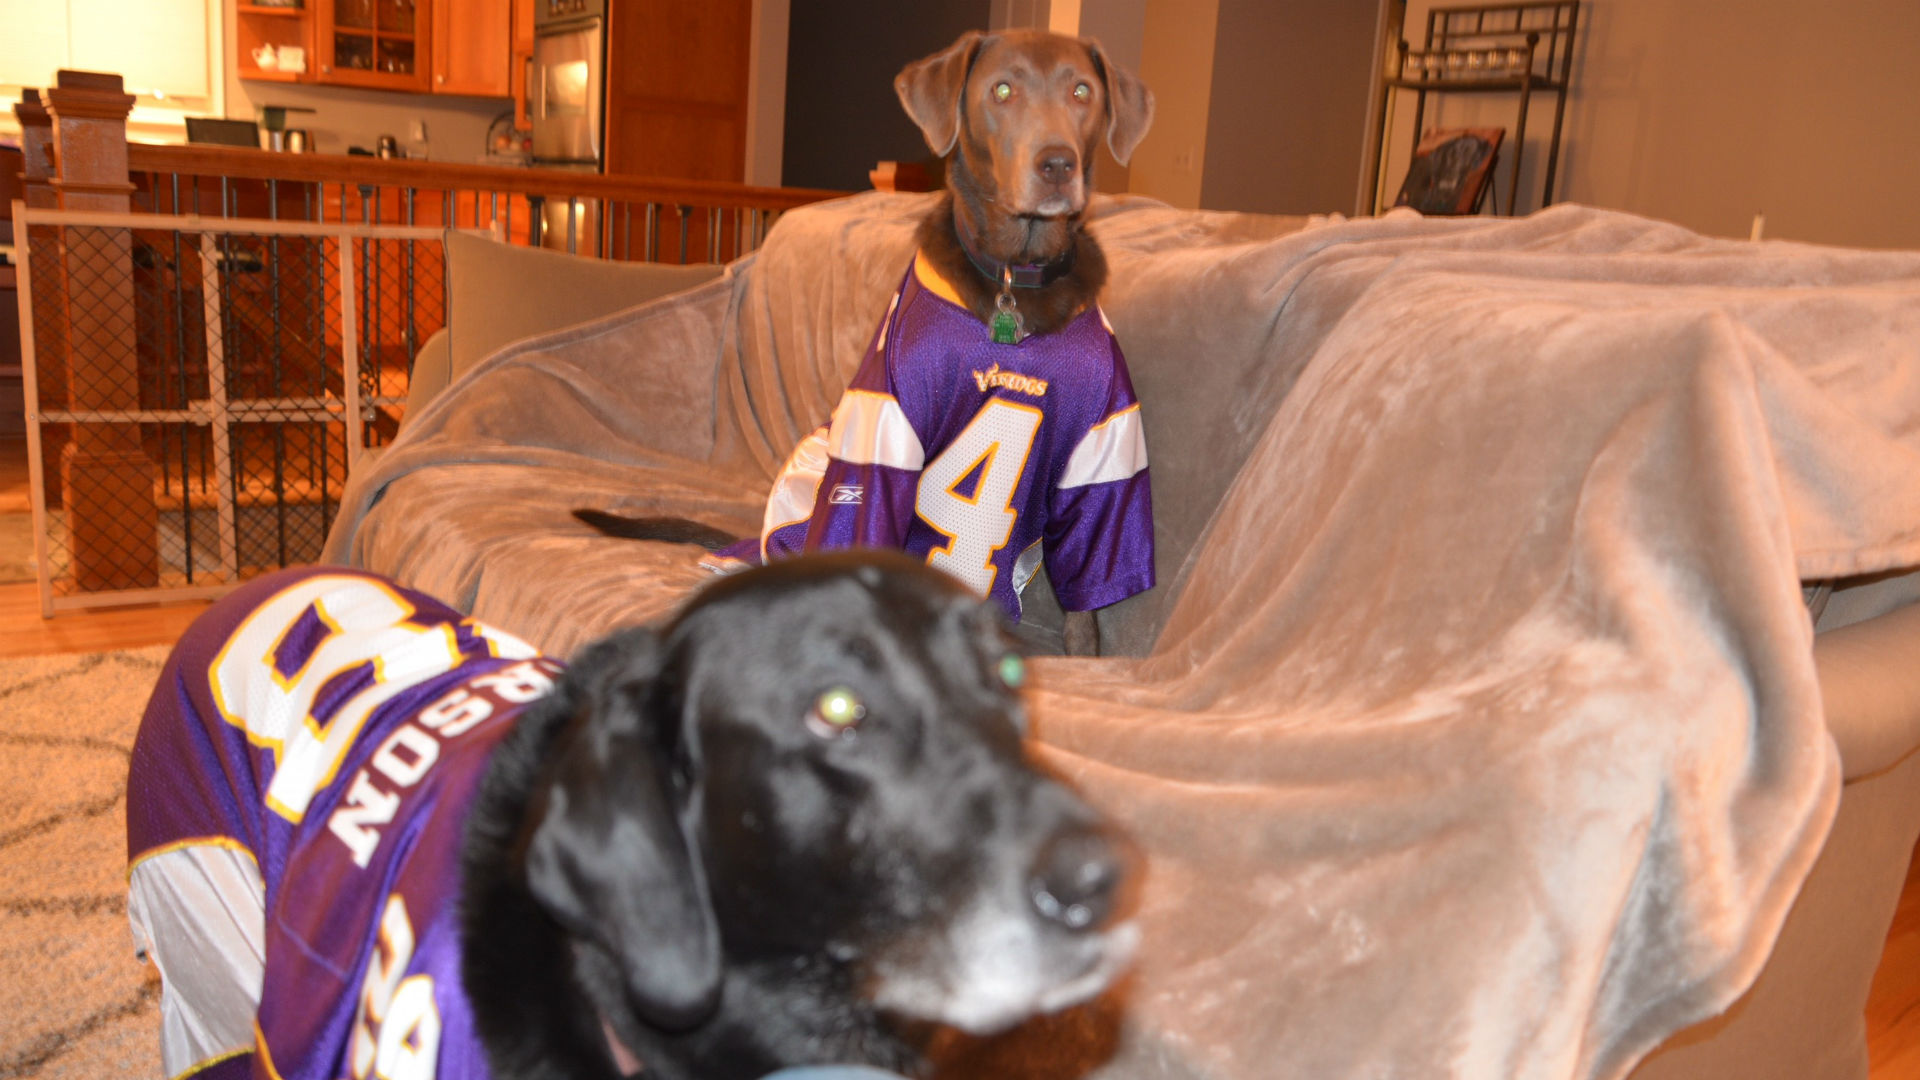 Send us a photo: Show off your pet in Vikings gear - StarTribune.com